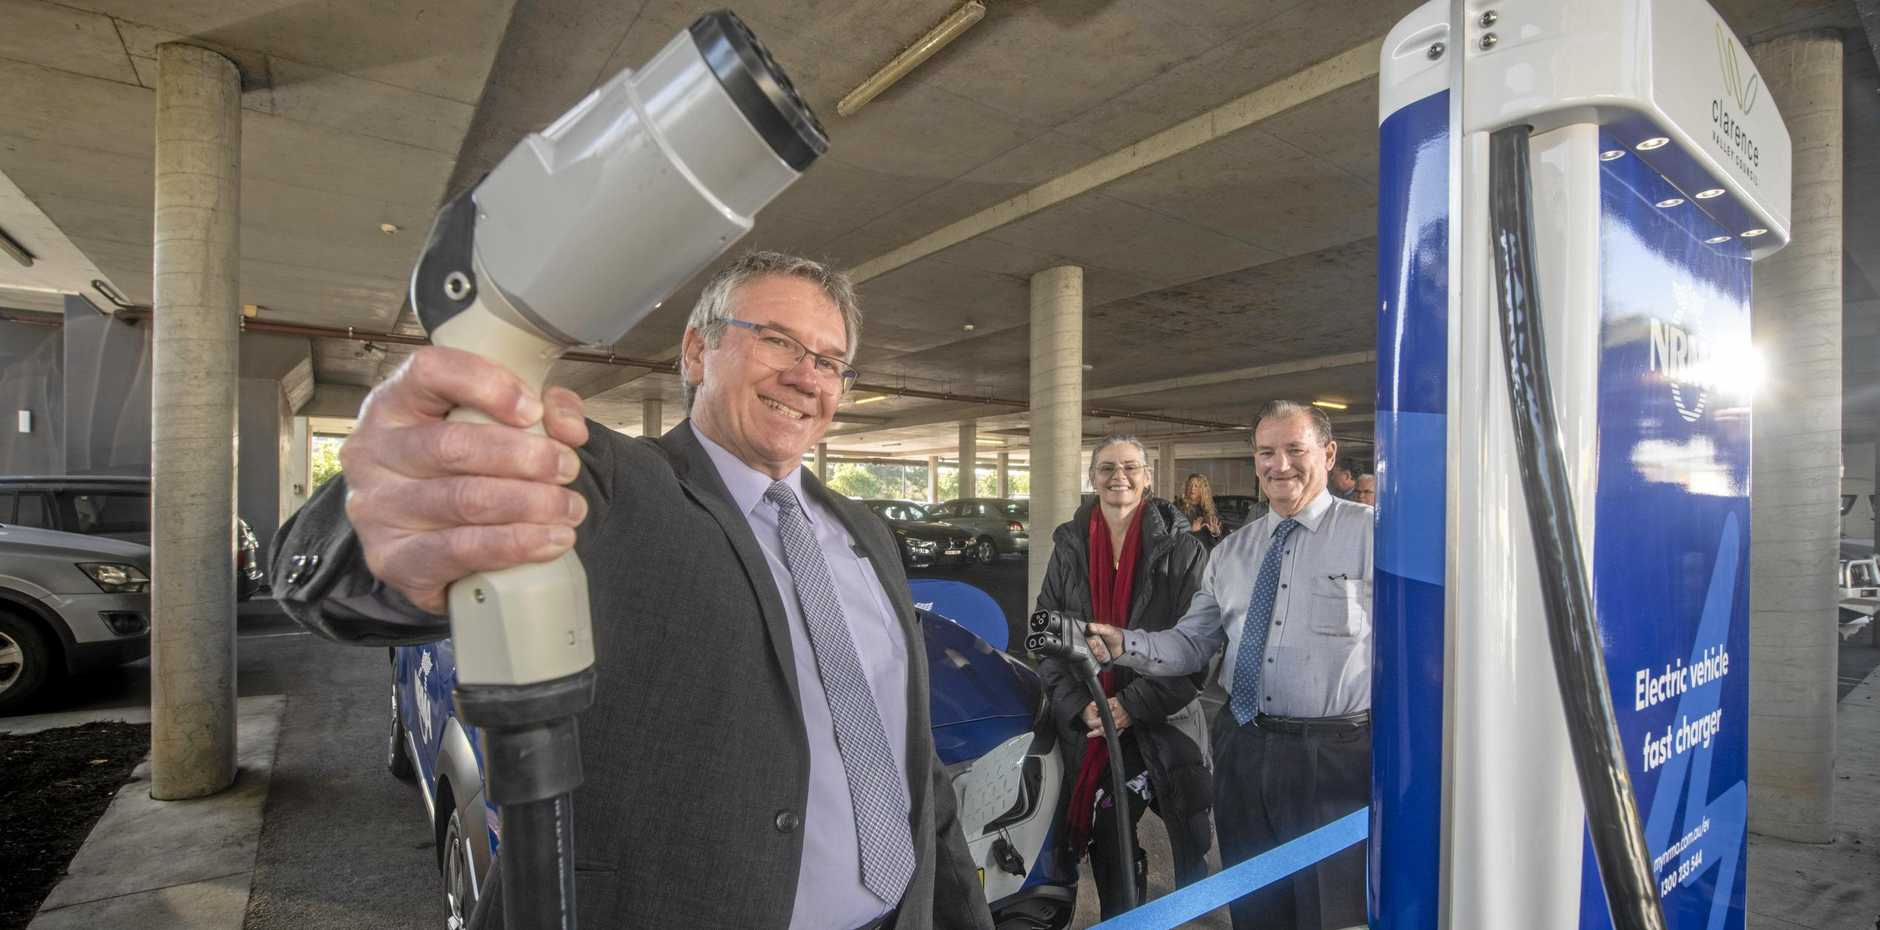 Clarence Valley Council general manager Ashley Lindsay is joined by NRMA executive general manager motoring Nell Payne and Mayor Jim Simmons at the launch of NRMA's fast charging station under the Grafton Library.